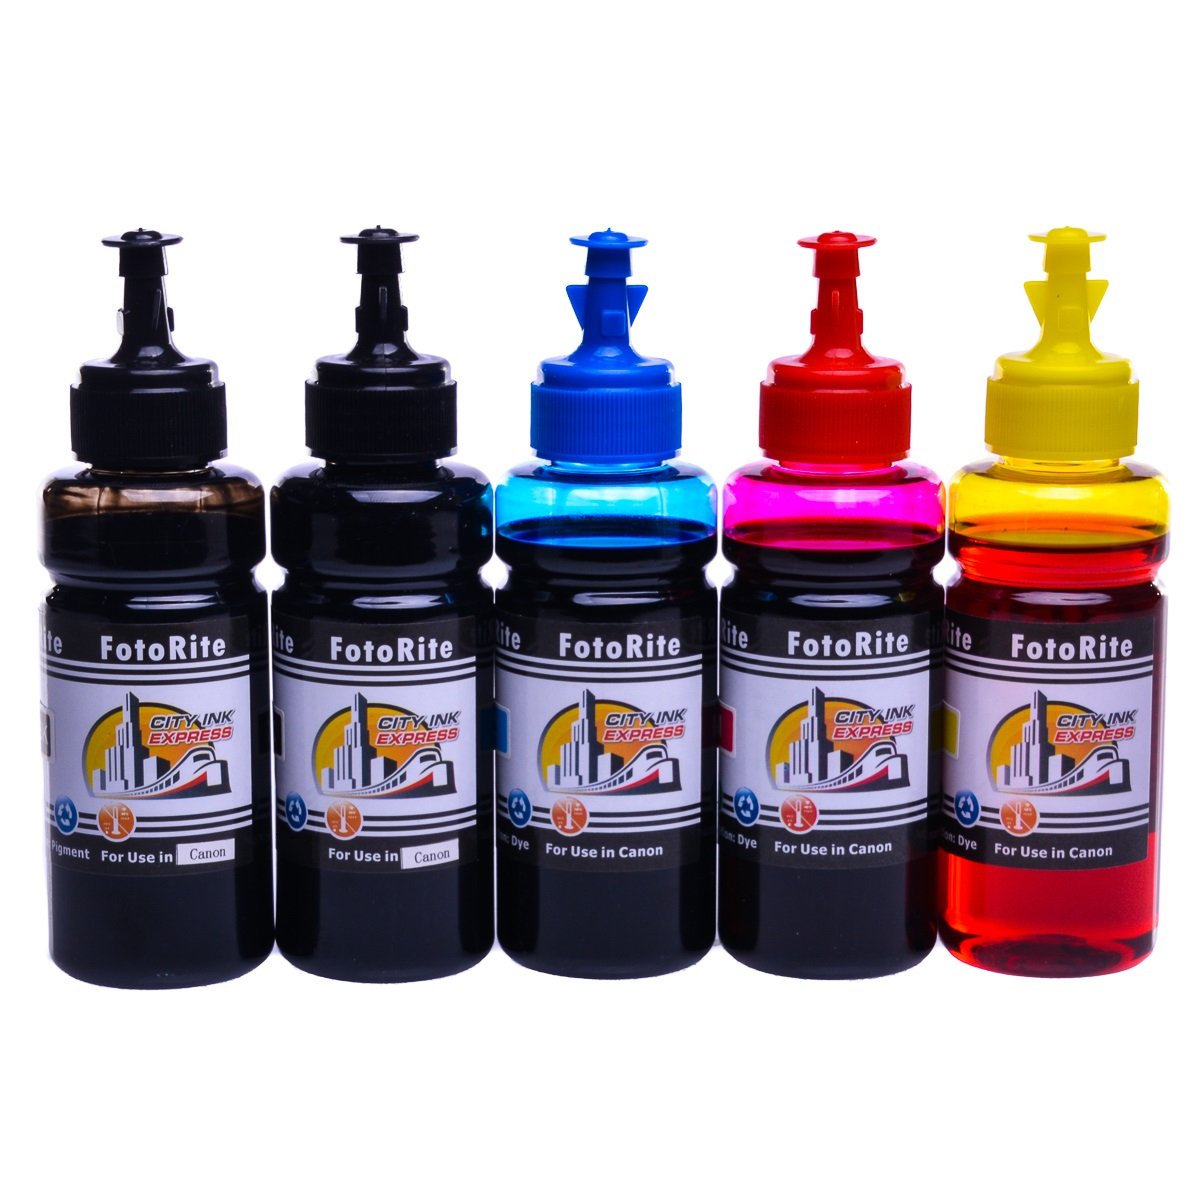 Cheap Multipack dye and pigment refill replaces Canon Pixma IX6250